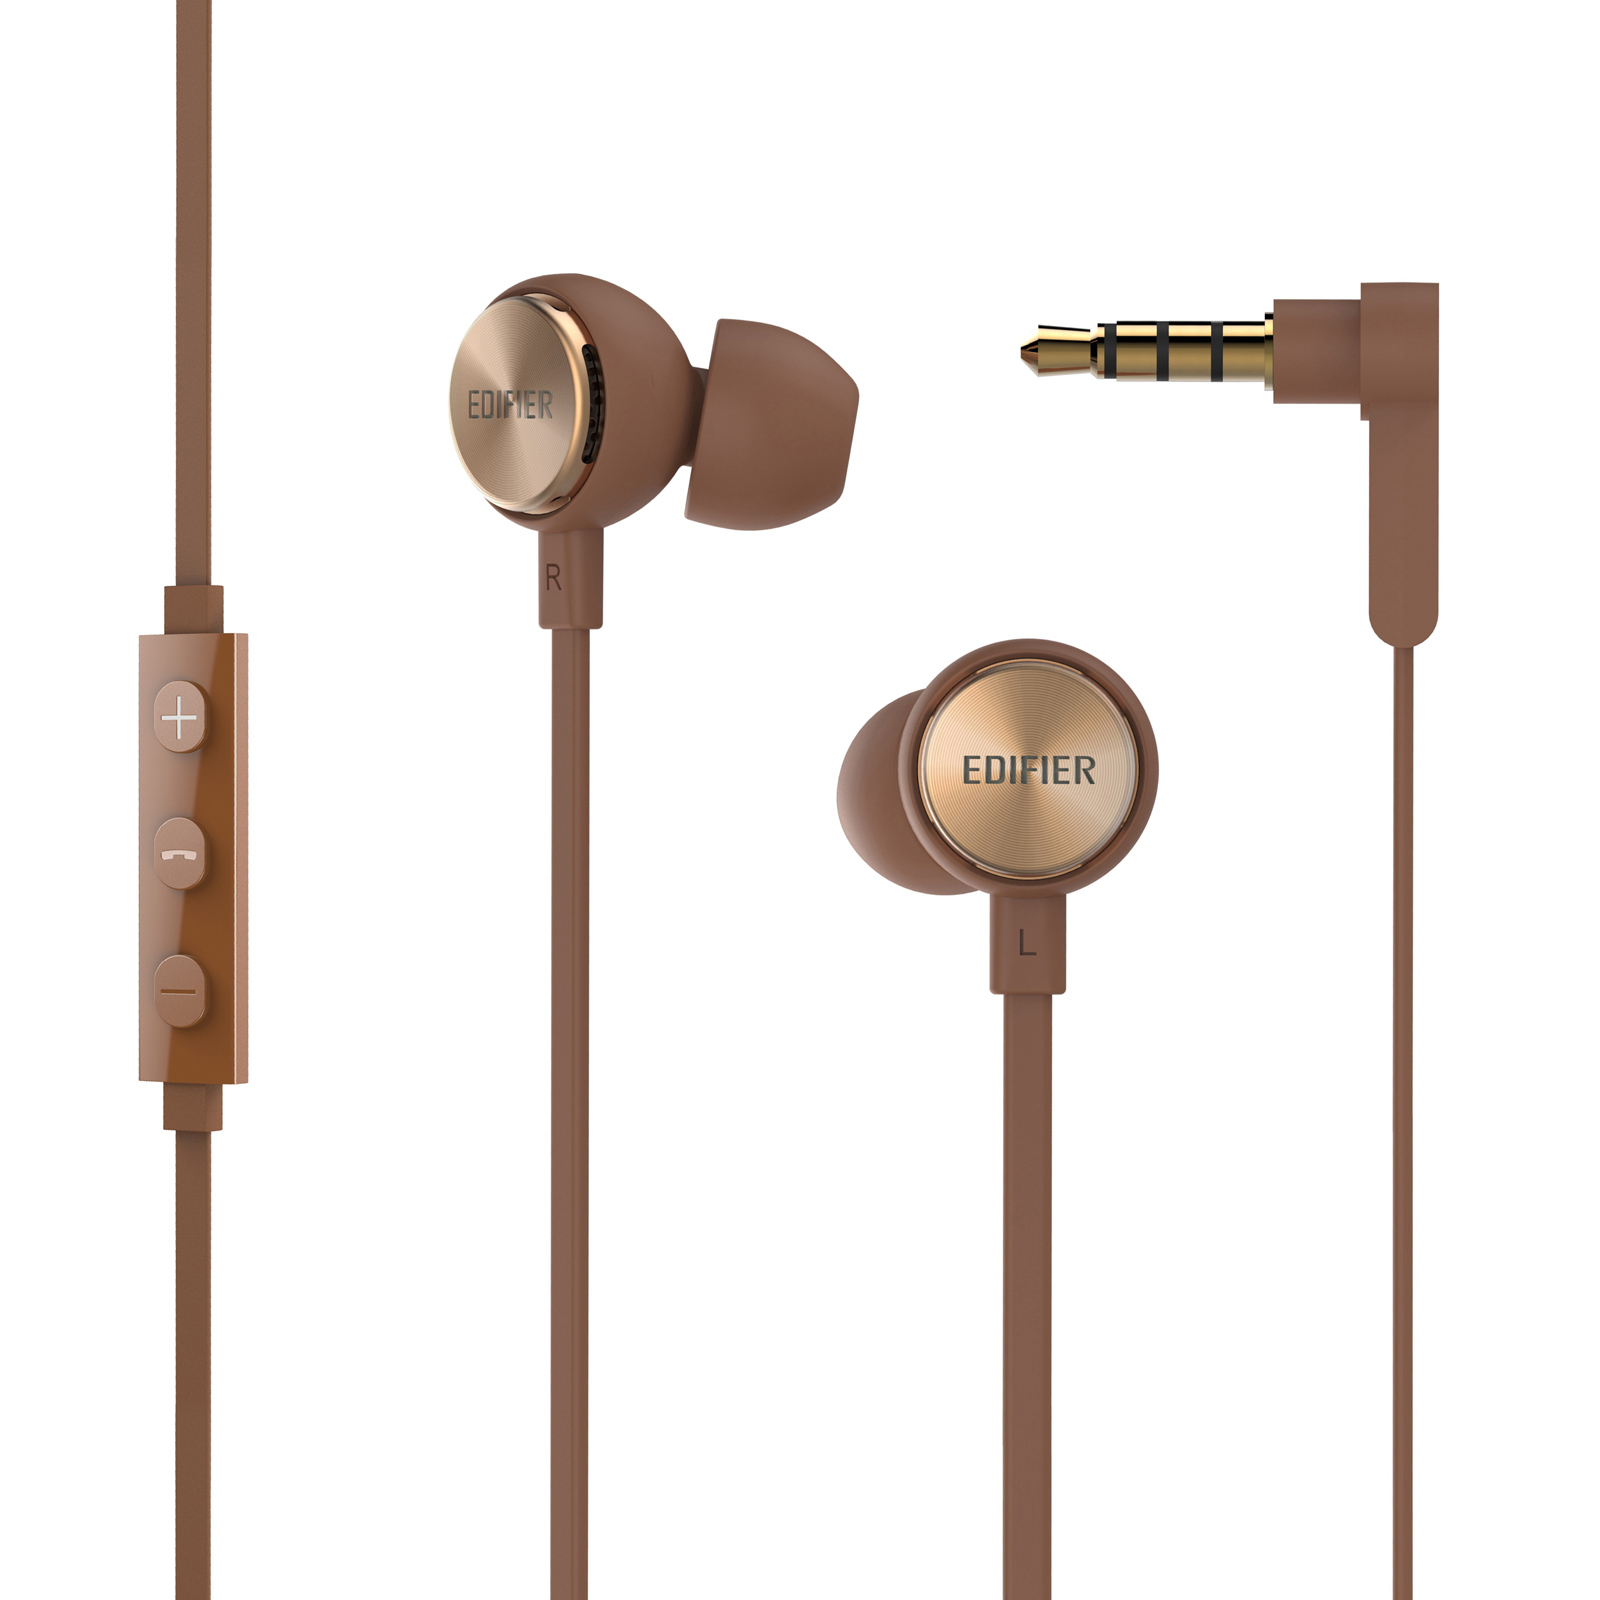 Edifier P293 Plus Headphones In-Ear Earphones Inline Volume Playback Controls Flat L Shaped Cable Comfortable Eartips - Brown